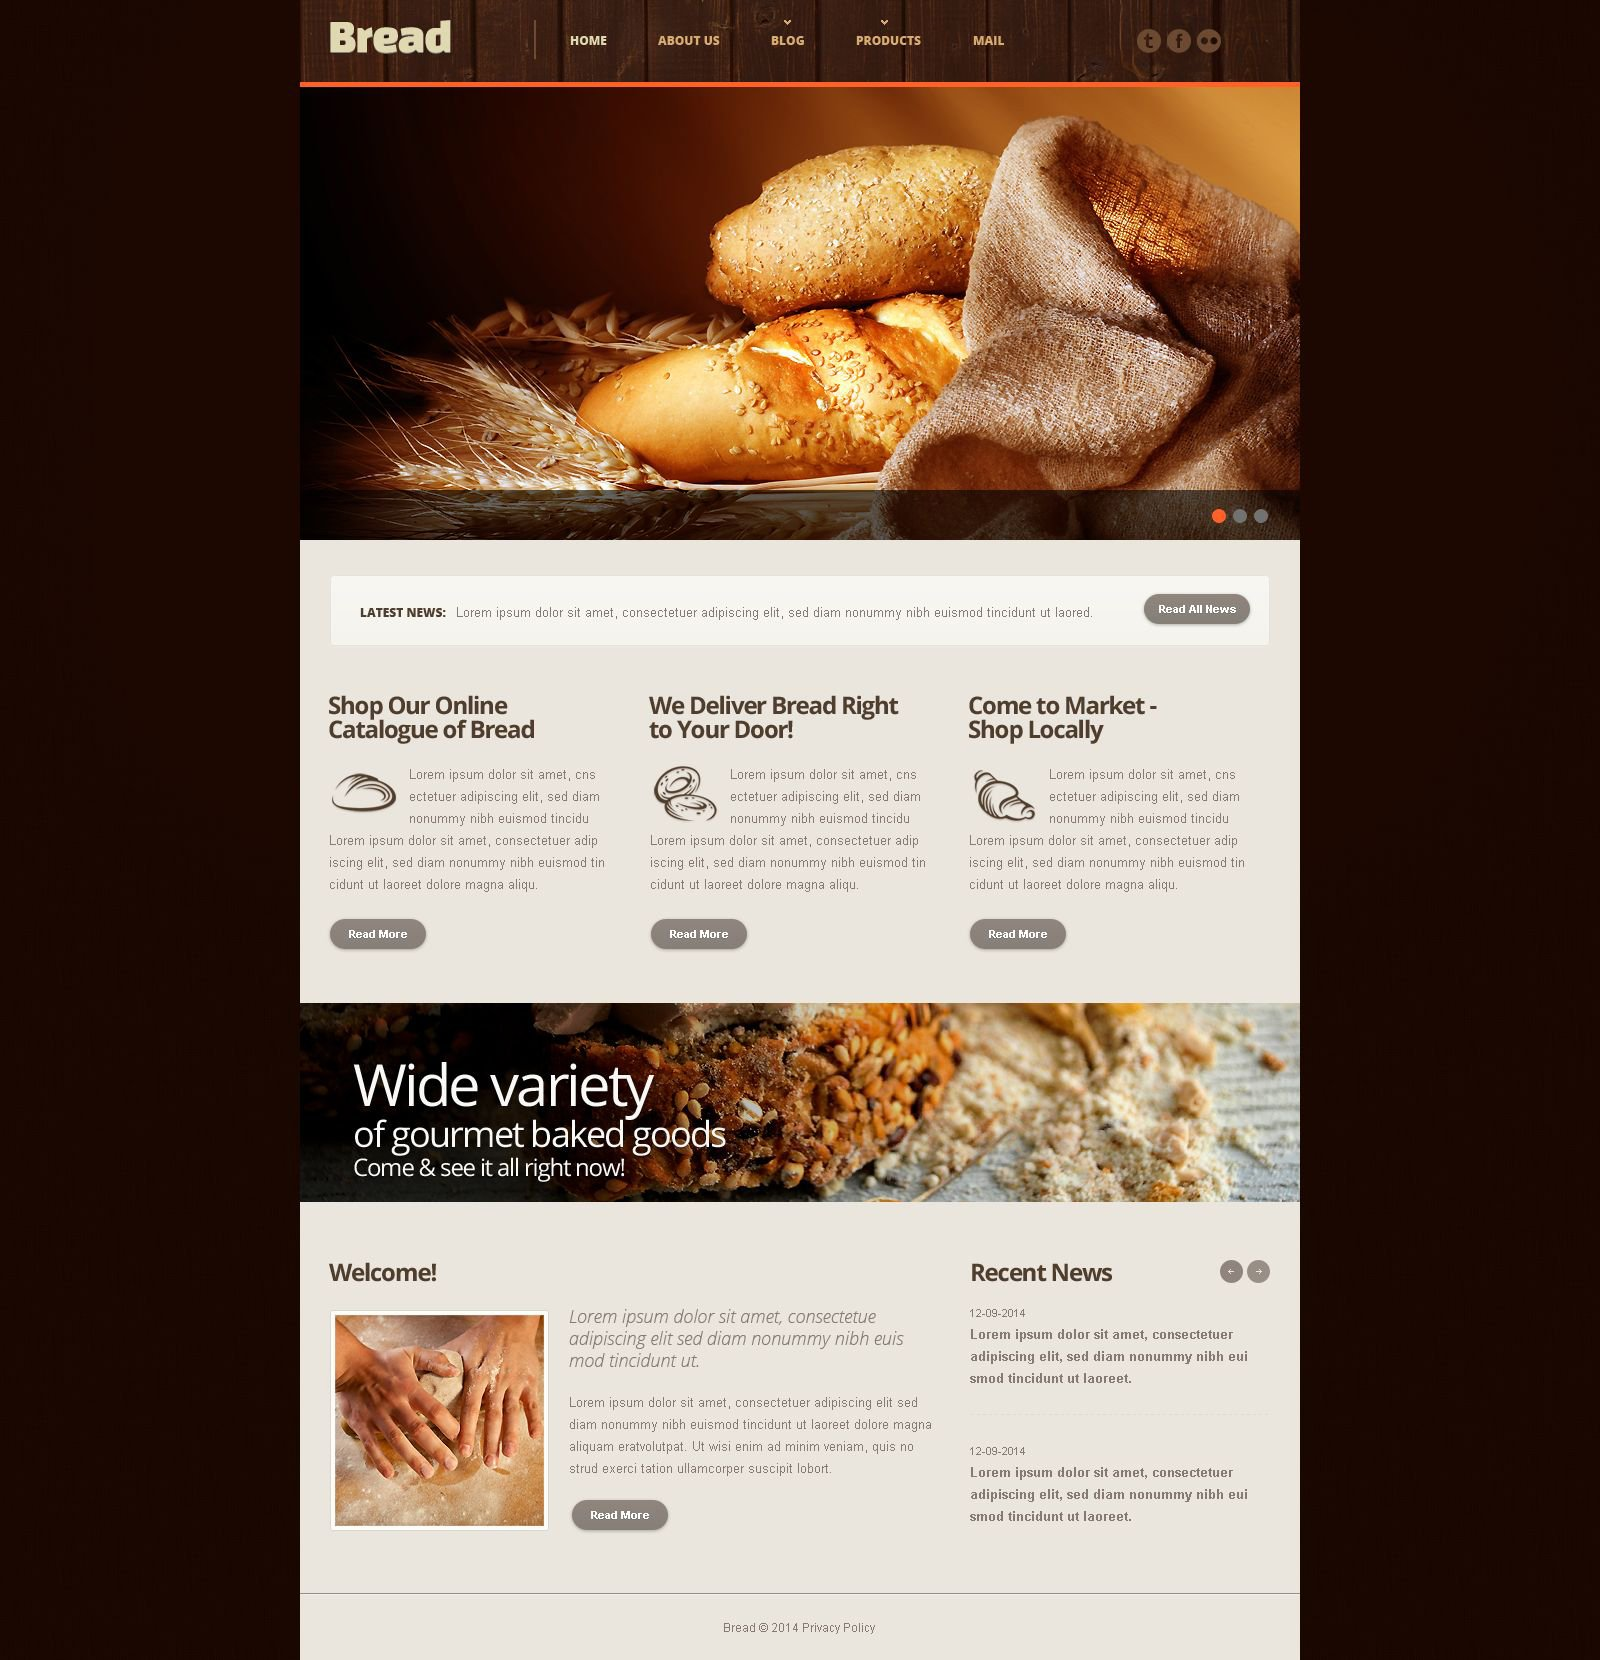 The Bread Bakery Responsive Javascript Animated Design 54011, one of the best website templates of its kind (food & drink, most popular), also known as bread bakery website template, products website template, chocolate website template, cake website template, biscuit website template, filling website template, tasty website template, delicious website template, wedding website template, celebration website template, birthday website template, fruits website template, sweets website template, cookies website template, specials website template, receipts website template, pastry website template, fancy website template, tarts website template, custard website template, cream website template, cookery website template, experts website template, masters website template, services website template, order website template, quotes website template, delivery website template, staff and related with bread bakery, products, chocolate, cake, biscuit, filling, tasty, delicious, wedding, celebration, birthday, fruits, sweets, cookies, specials, receipts, pastry, fancy, tarts, custard, cream, cookery, experts, masters, services, order, quotes, delivery, staff, etc.